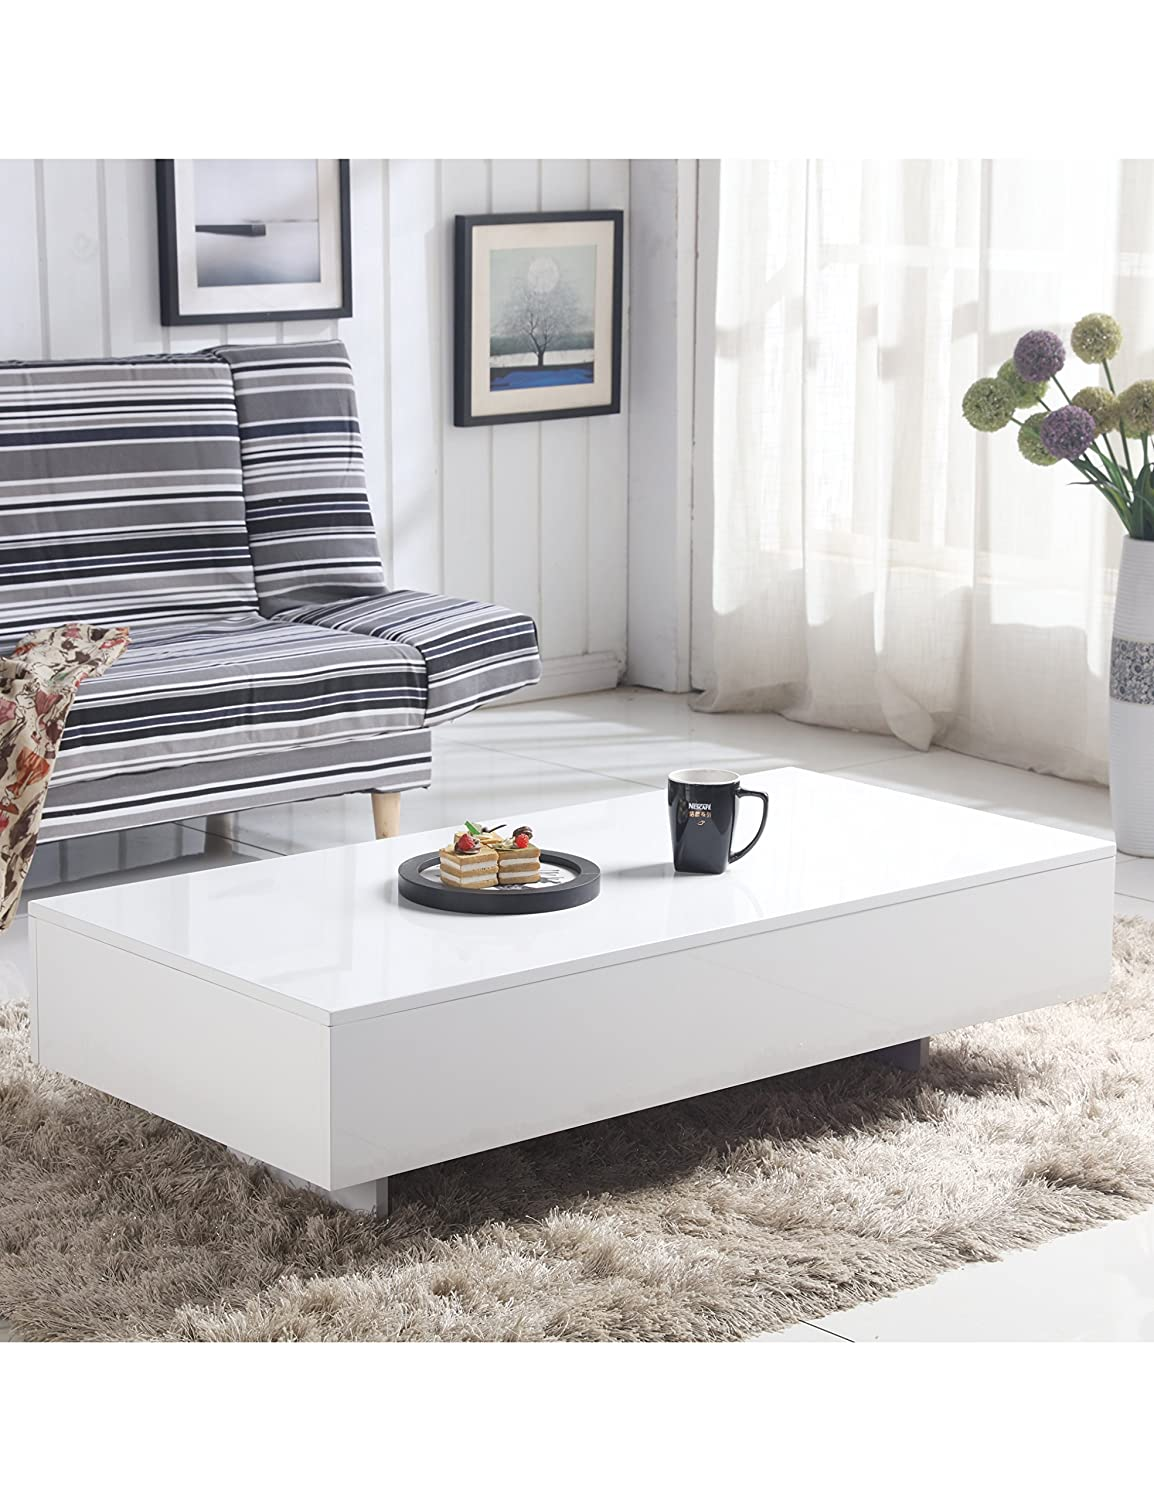 GOLDFAN Modern Rectangle Coffee Table White High Gloss Living Room Furniture For Home Office Furniture Ltd.